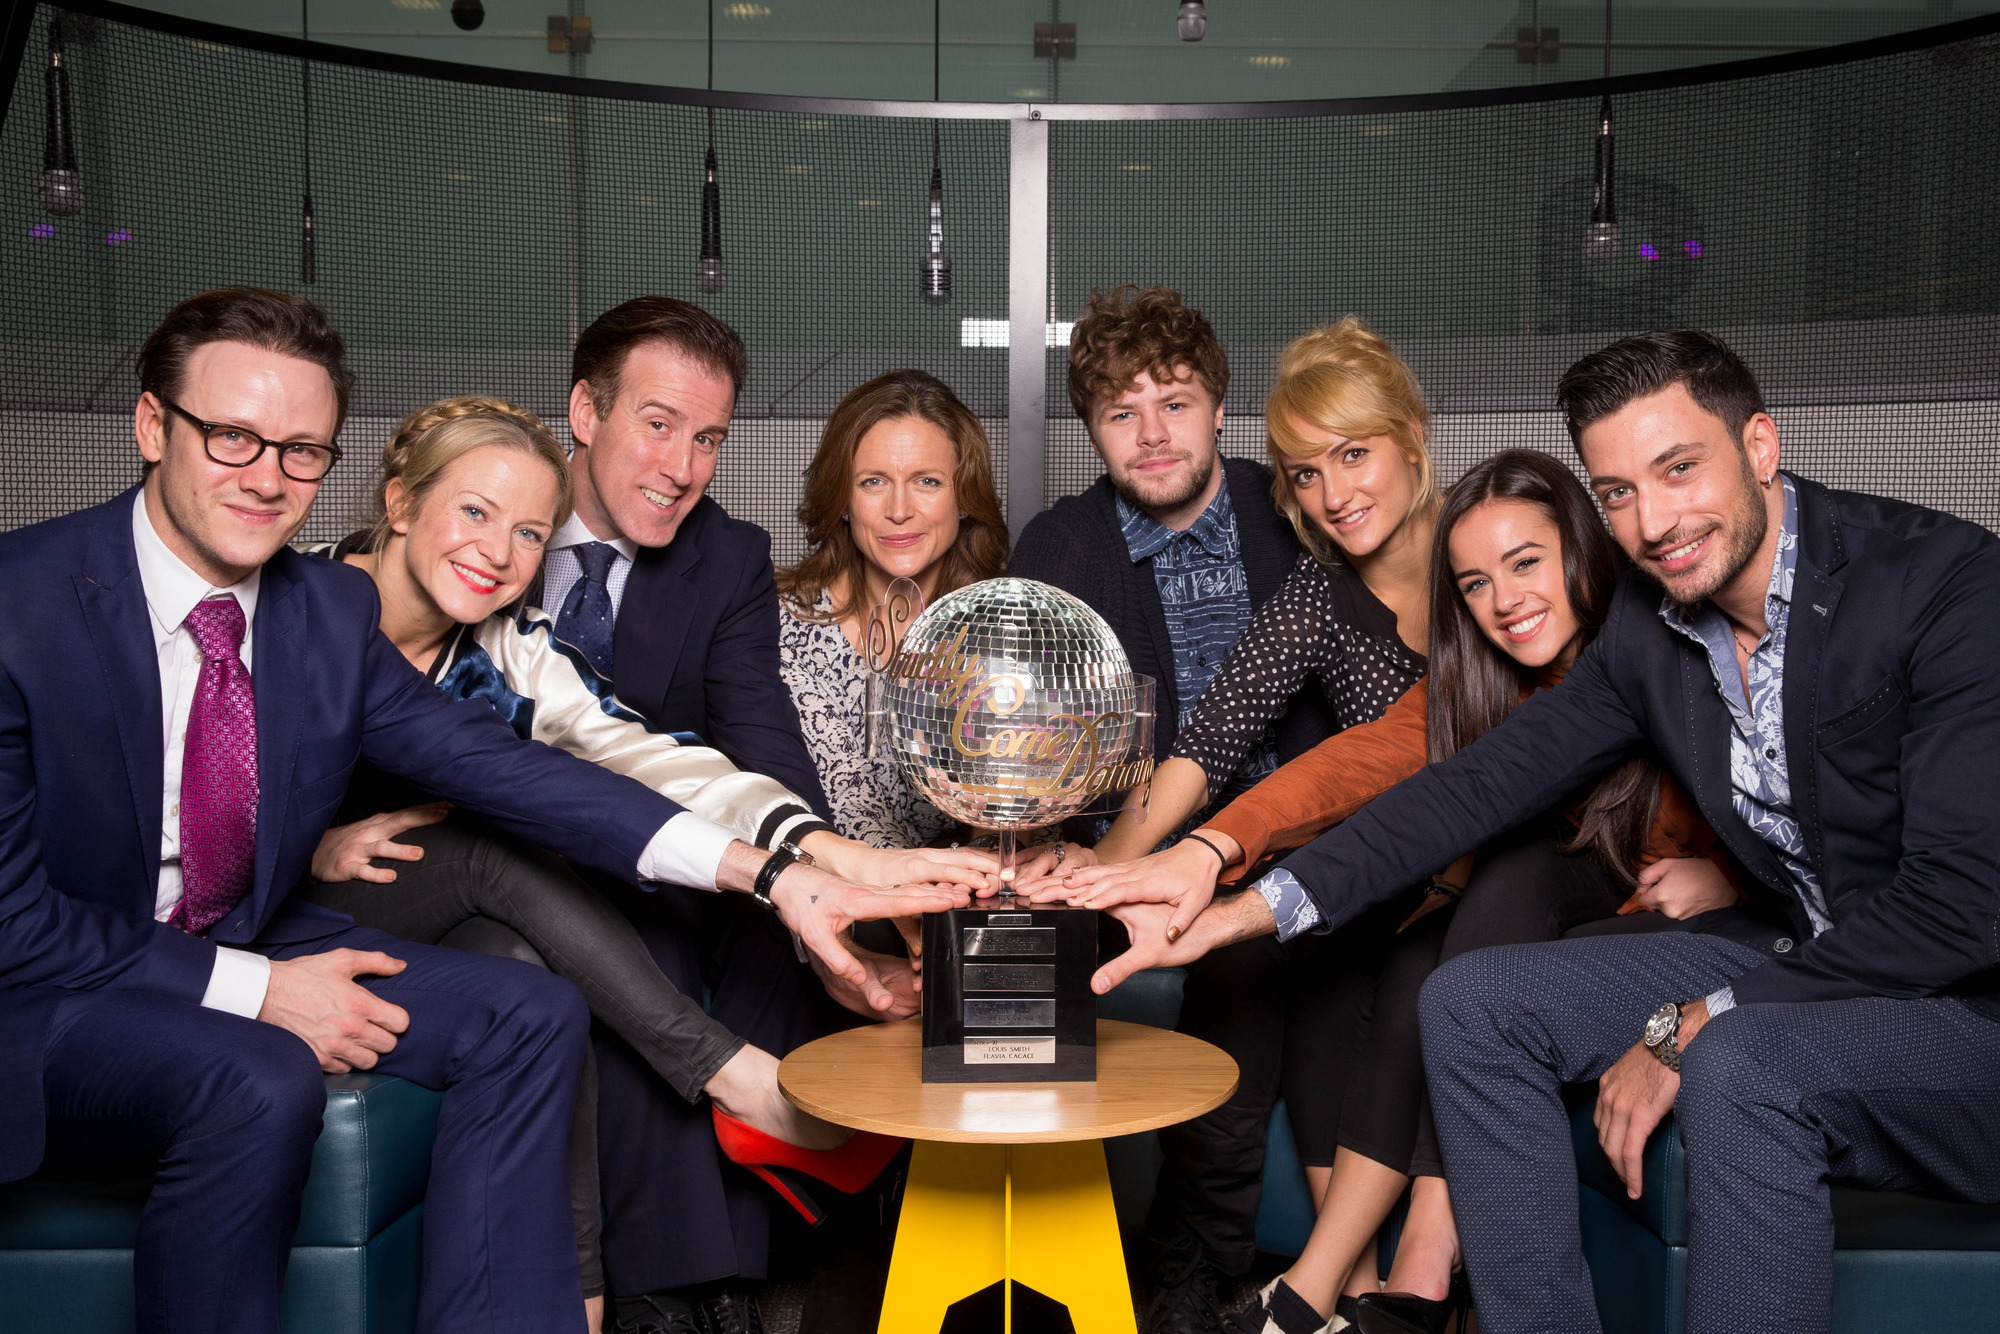 The final four couples with the Strictly trophy Kevin Clifton, Kellie Bright, Anton Du Beke, Katie Derham, Jay McGuiness, Aliona Vilani, Georgia May Foote, Giovanni Pernice